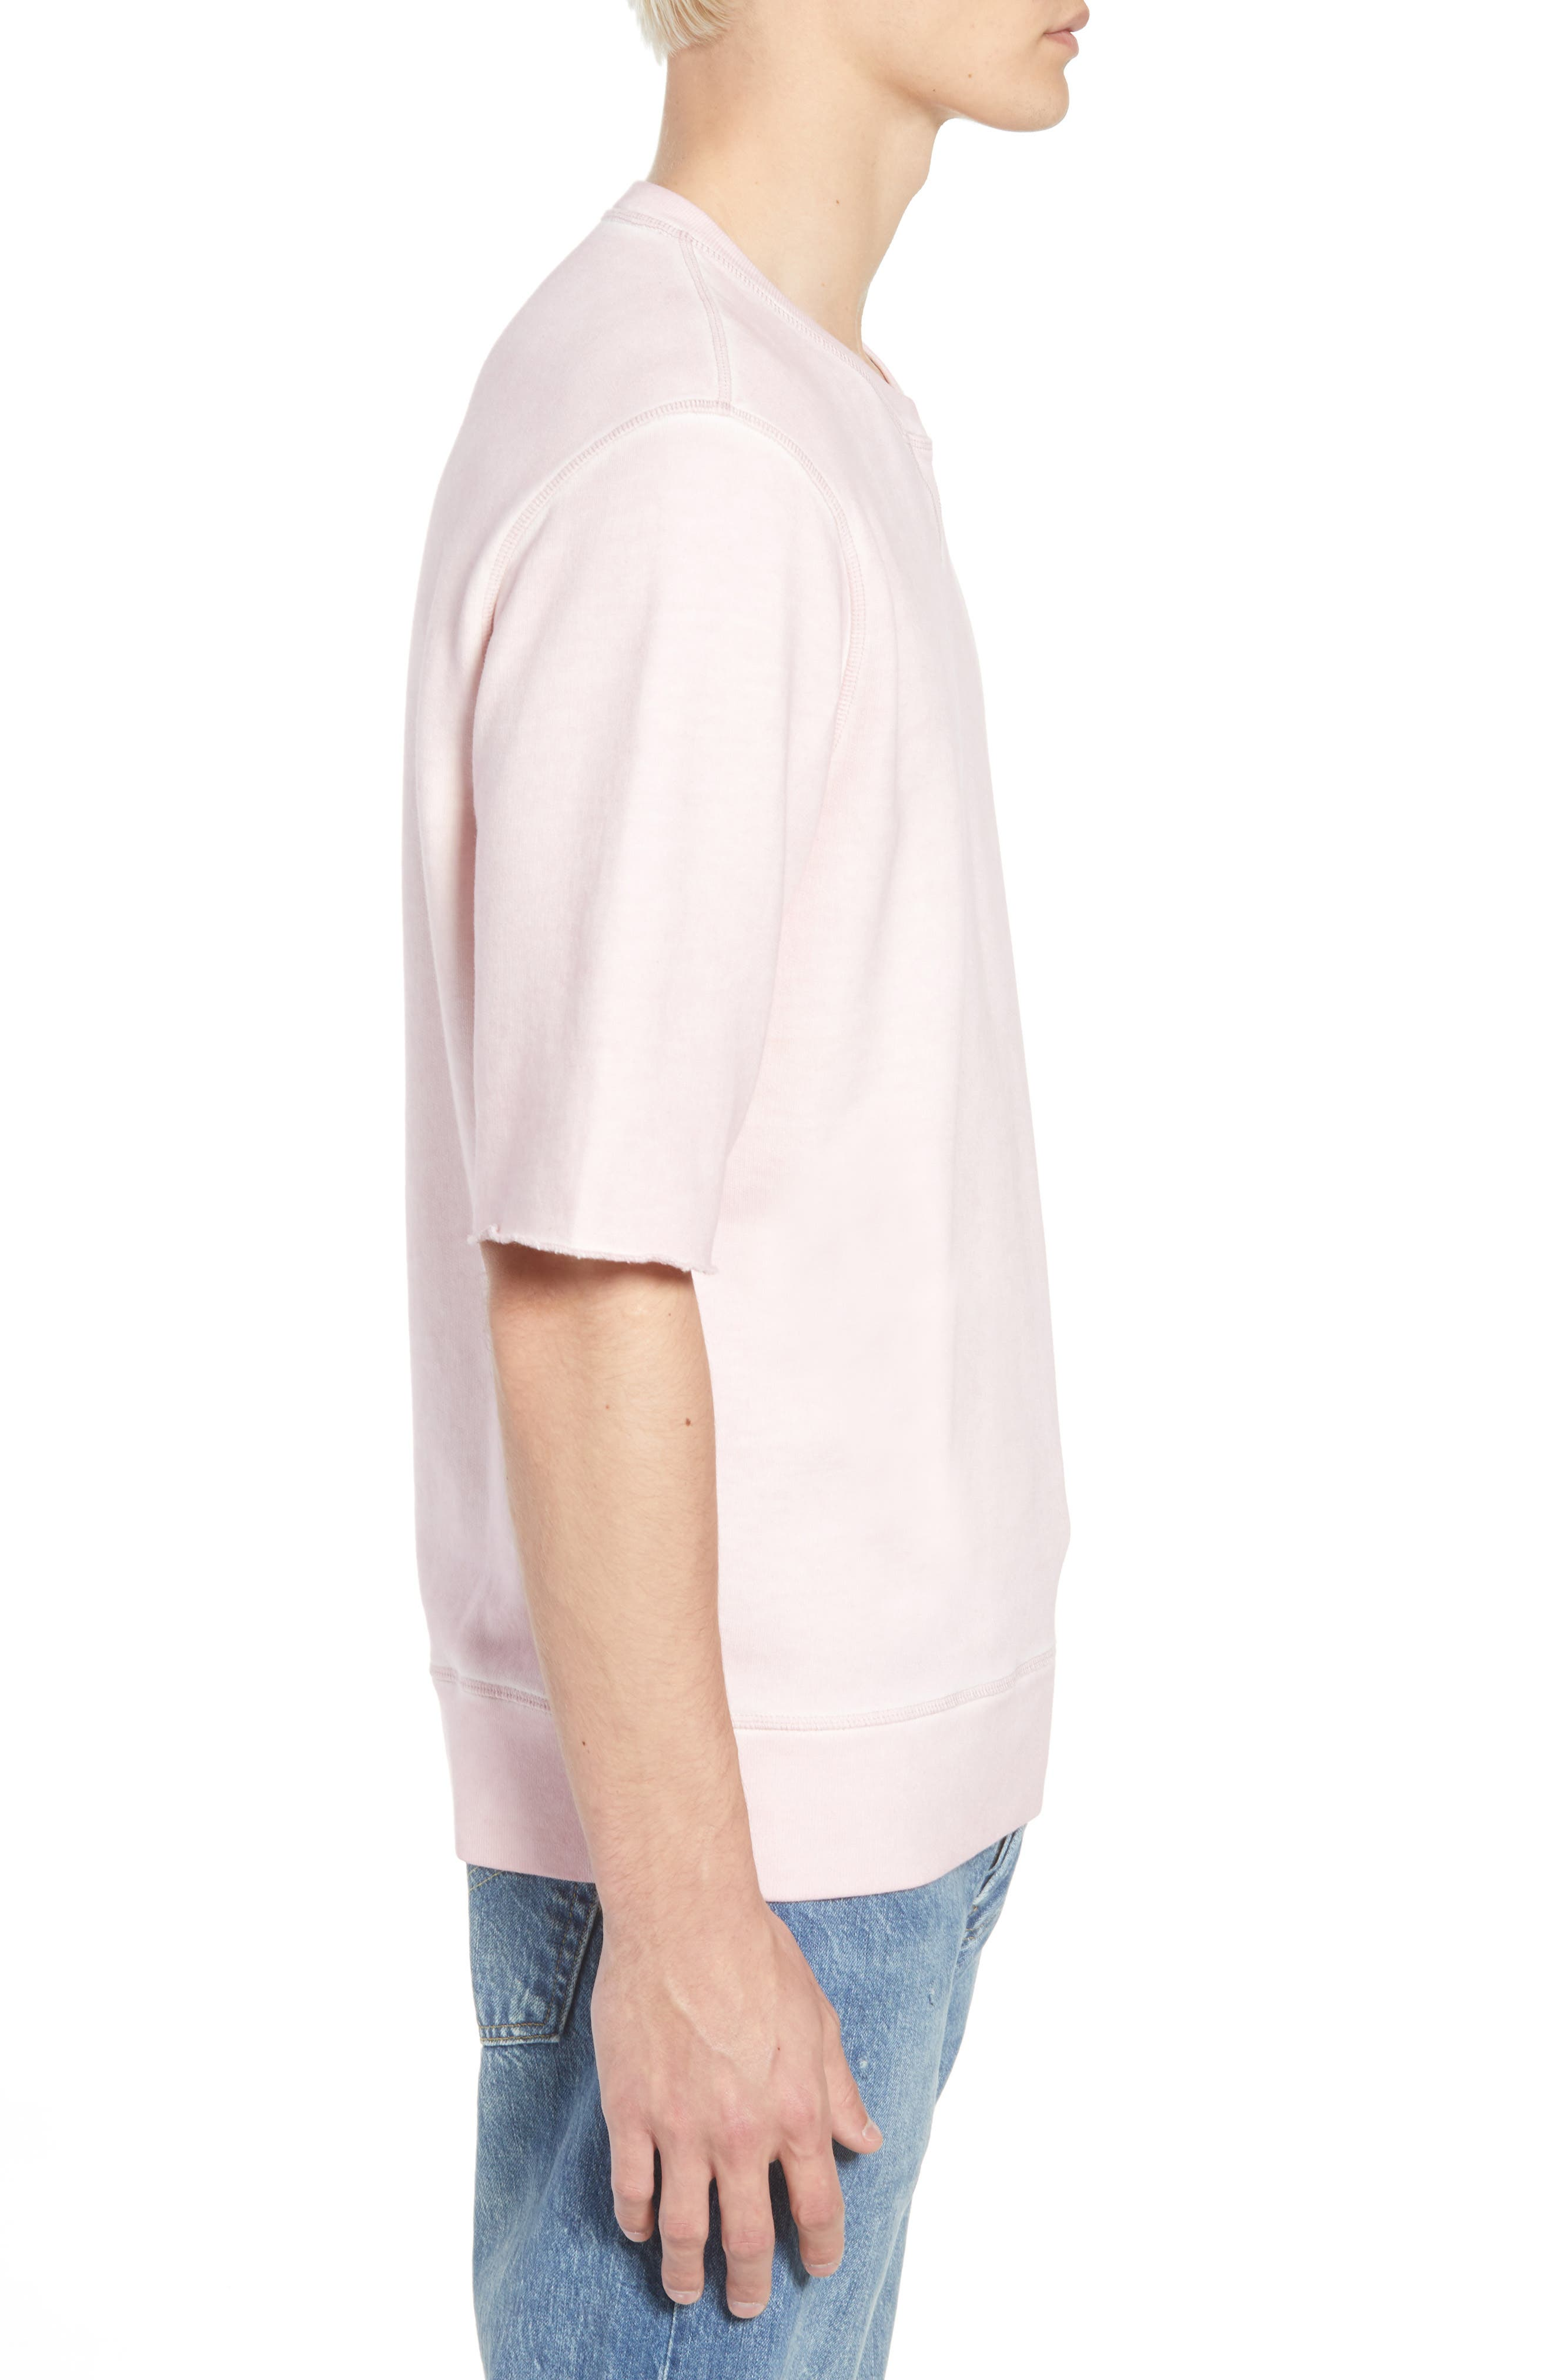 Levis'<sup>®</sup> Made & Crafted<sup>™</sup> Standard Fit T-Shirt,                             Alternate thumbnail 3, color,                             500